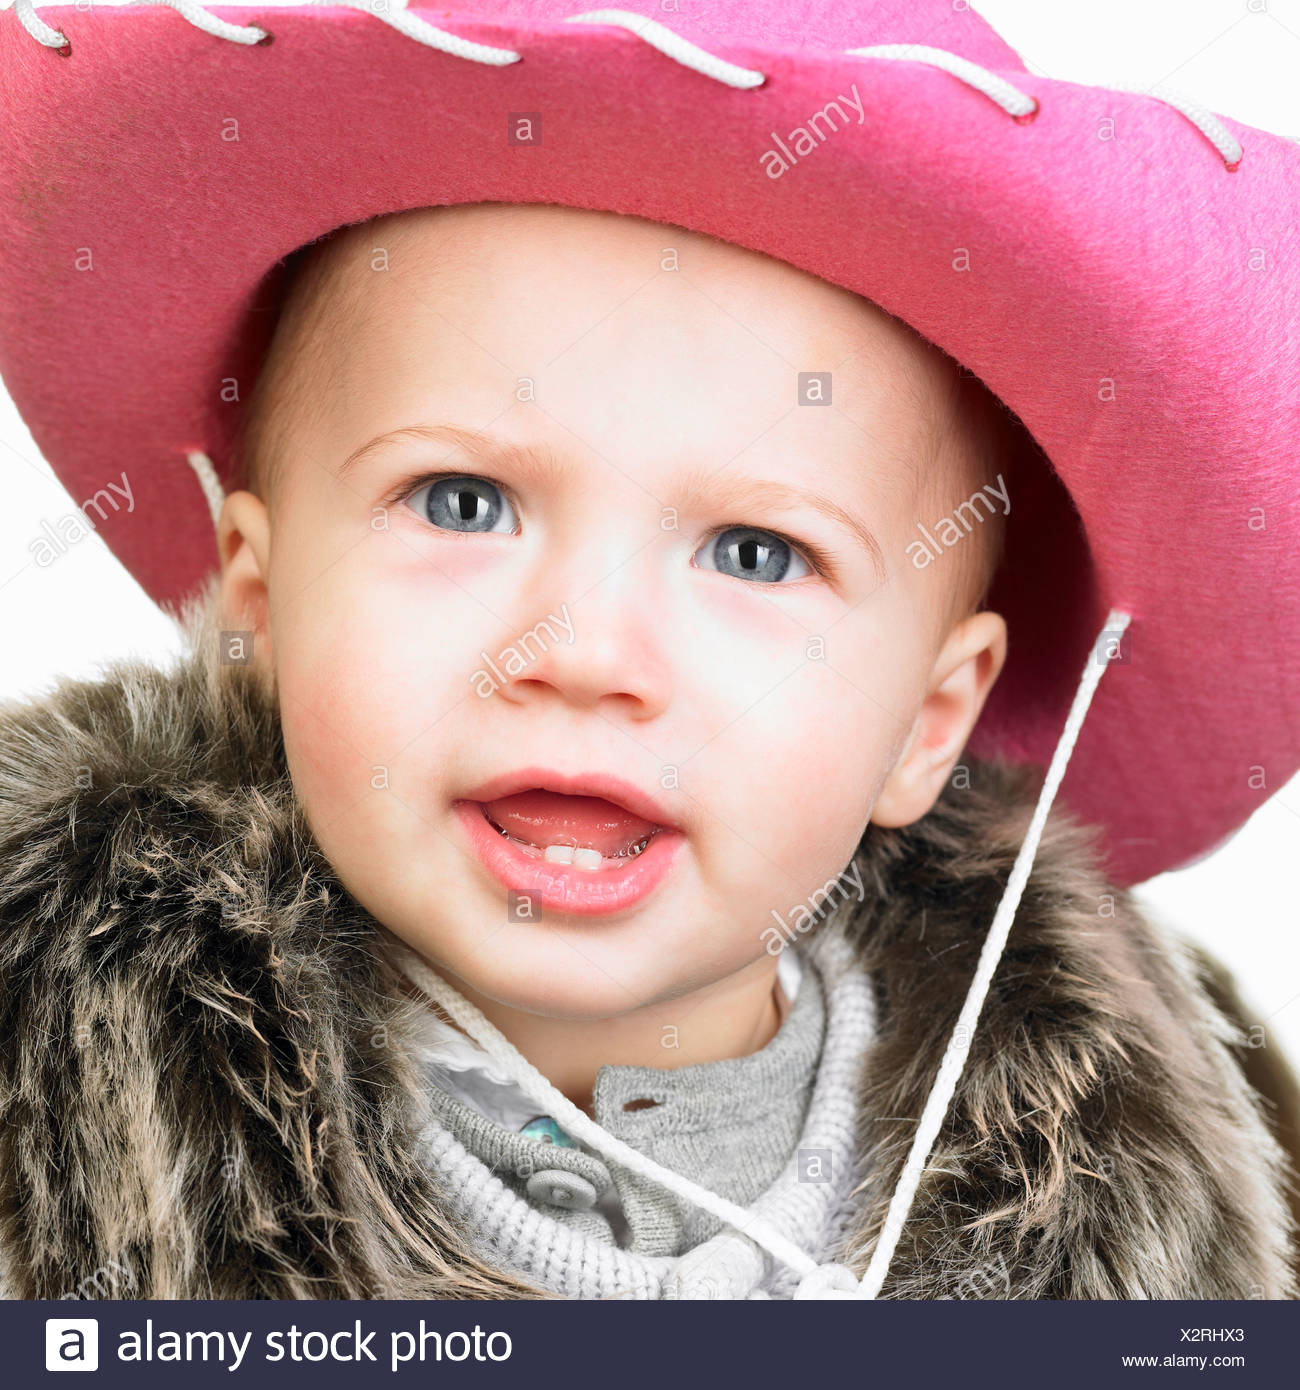 b7d7dee9157c9 Baby girl with cowgirl hat on her head Stock Photo  277114155 - Alamy